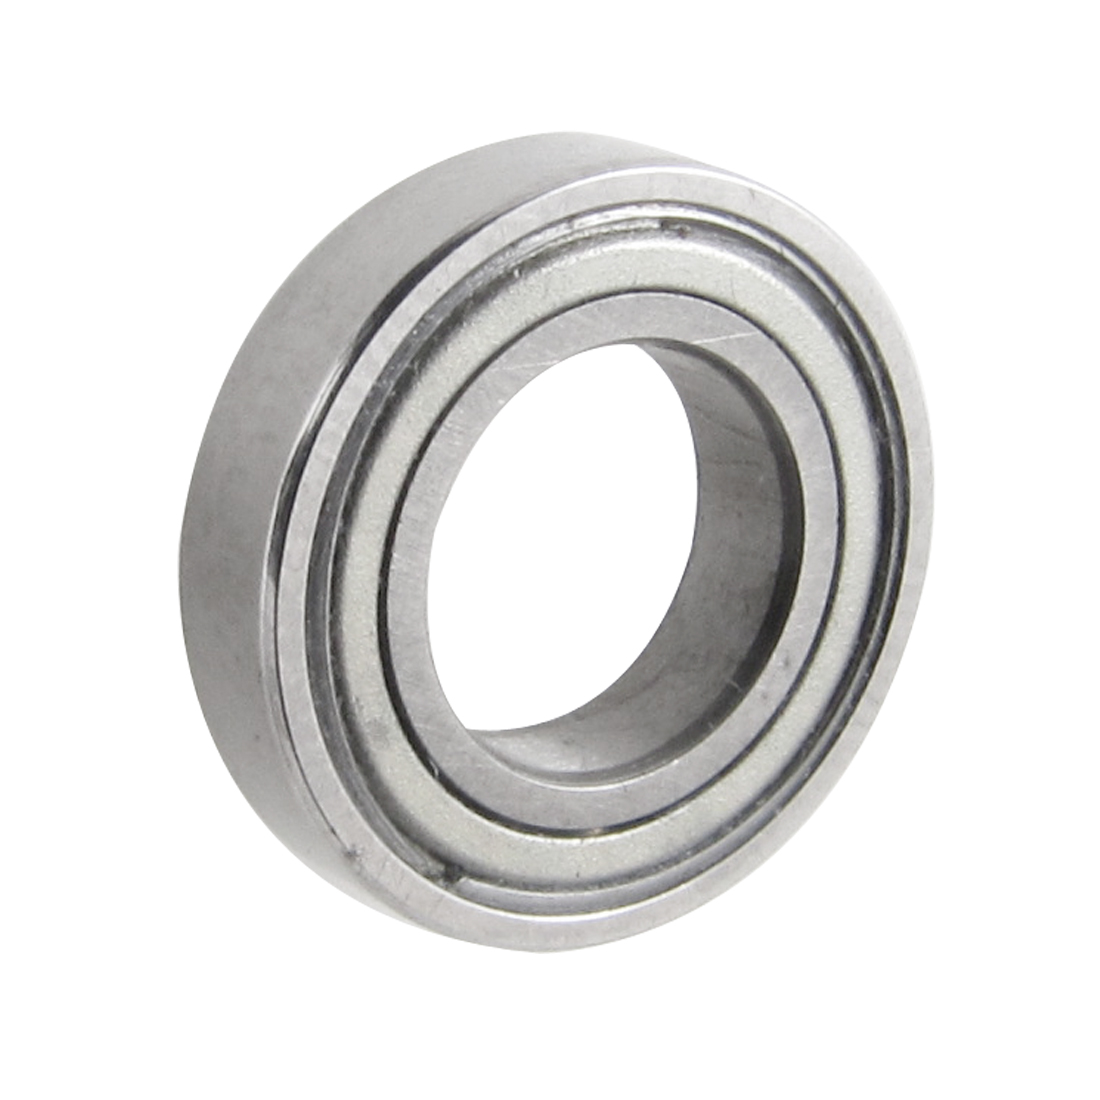 13mm x 7mm x 3mm Metal Sealed Deep Groove Roller Bearings Silver Tone